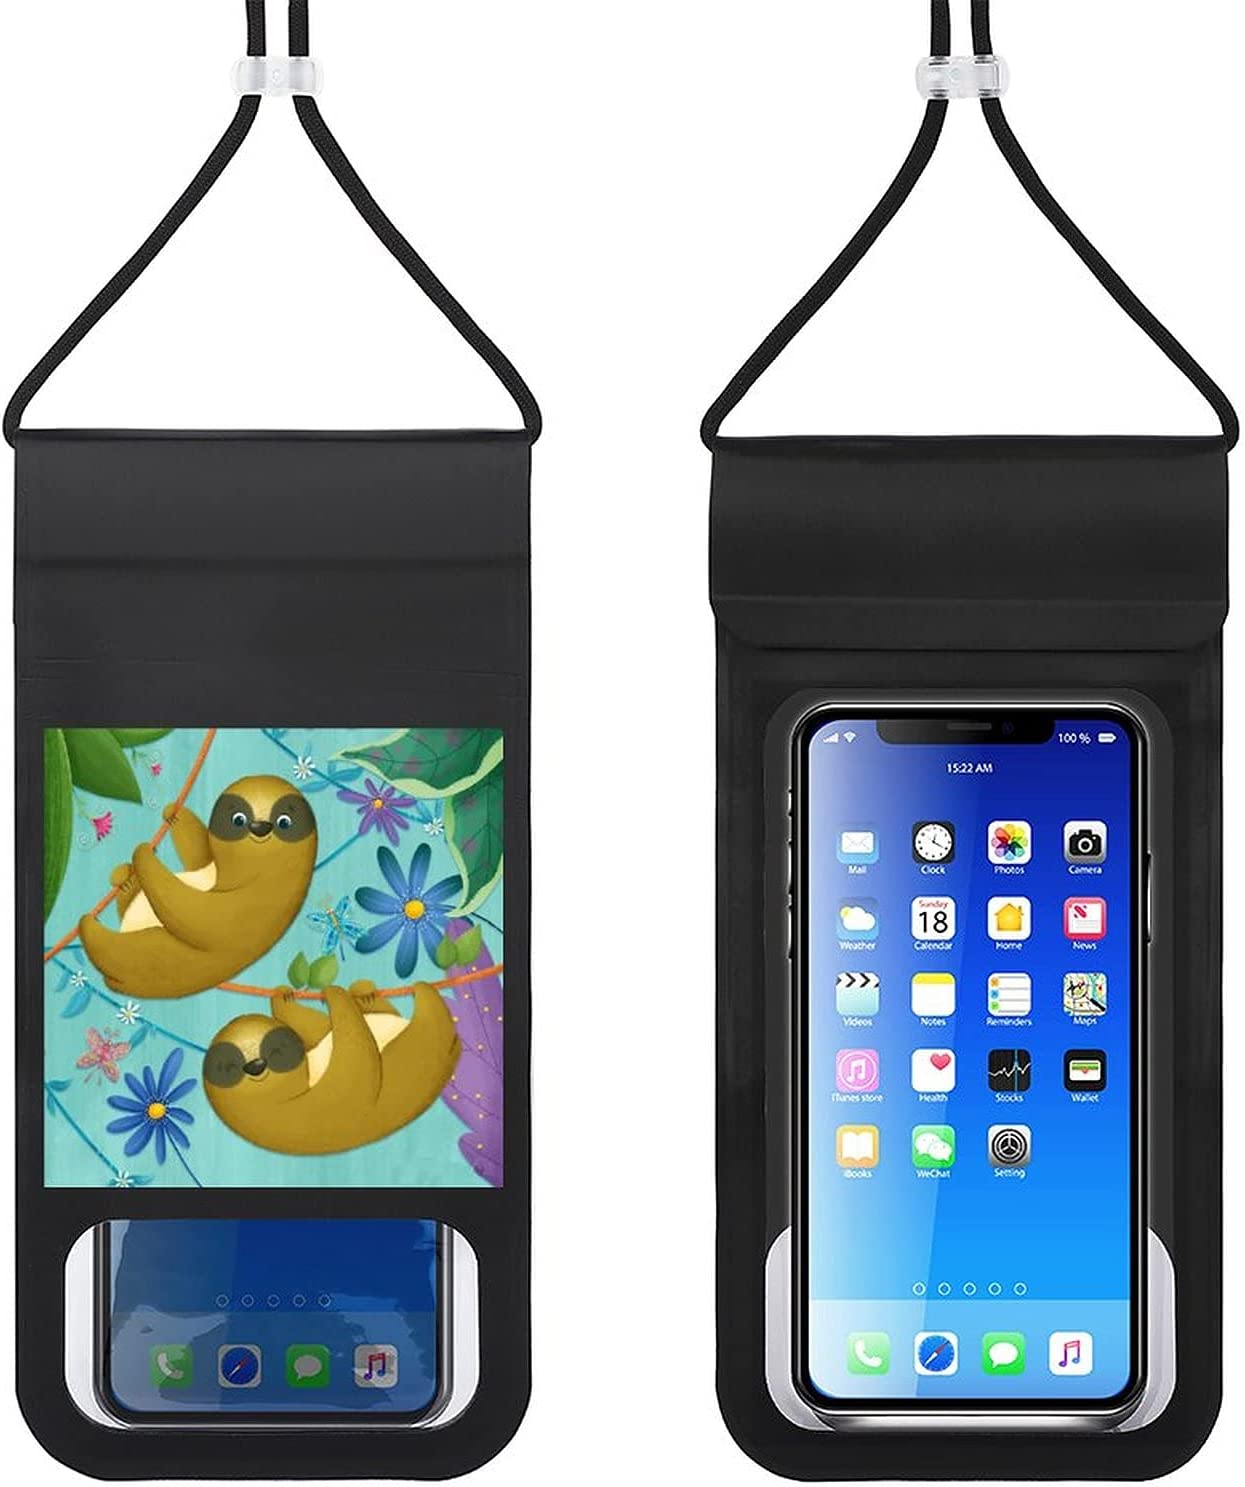 Waterproof Mobile Phone Package Cell Phone Dry Bag with Lanyard Phone Case Outdoor Swimming Phone Bag Sloth in The Jungle